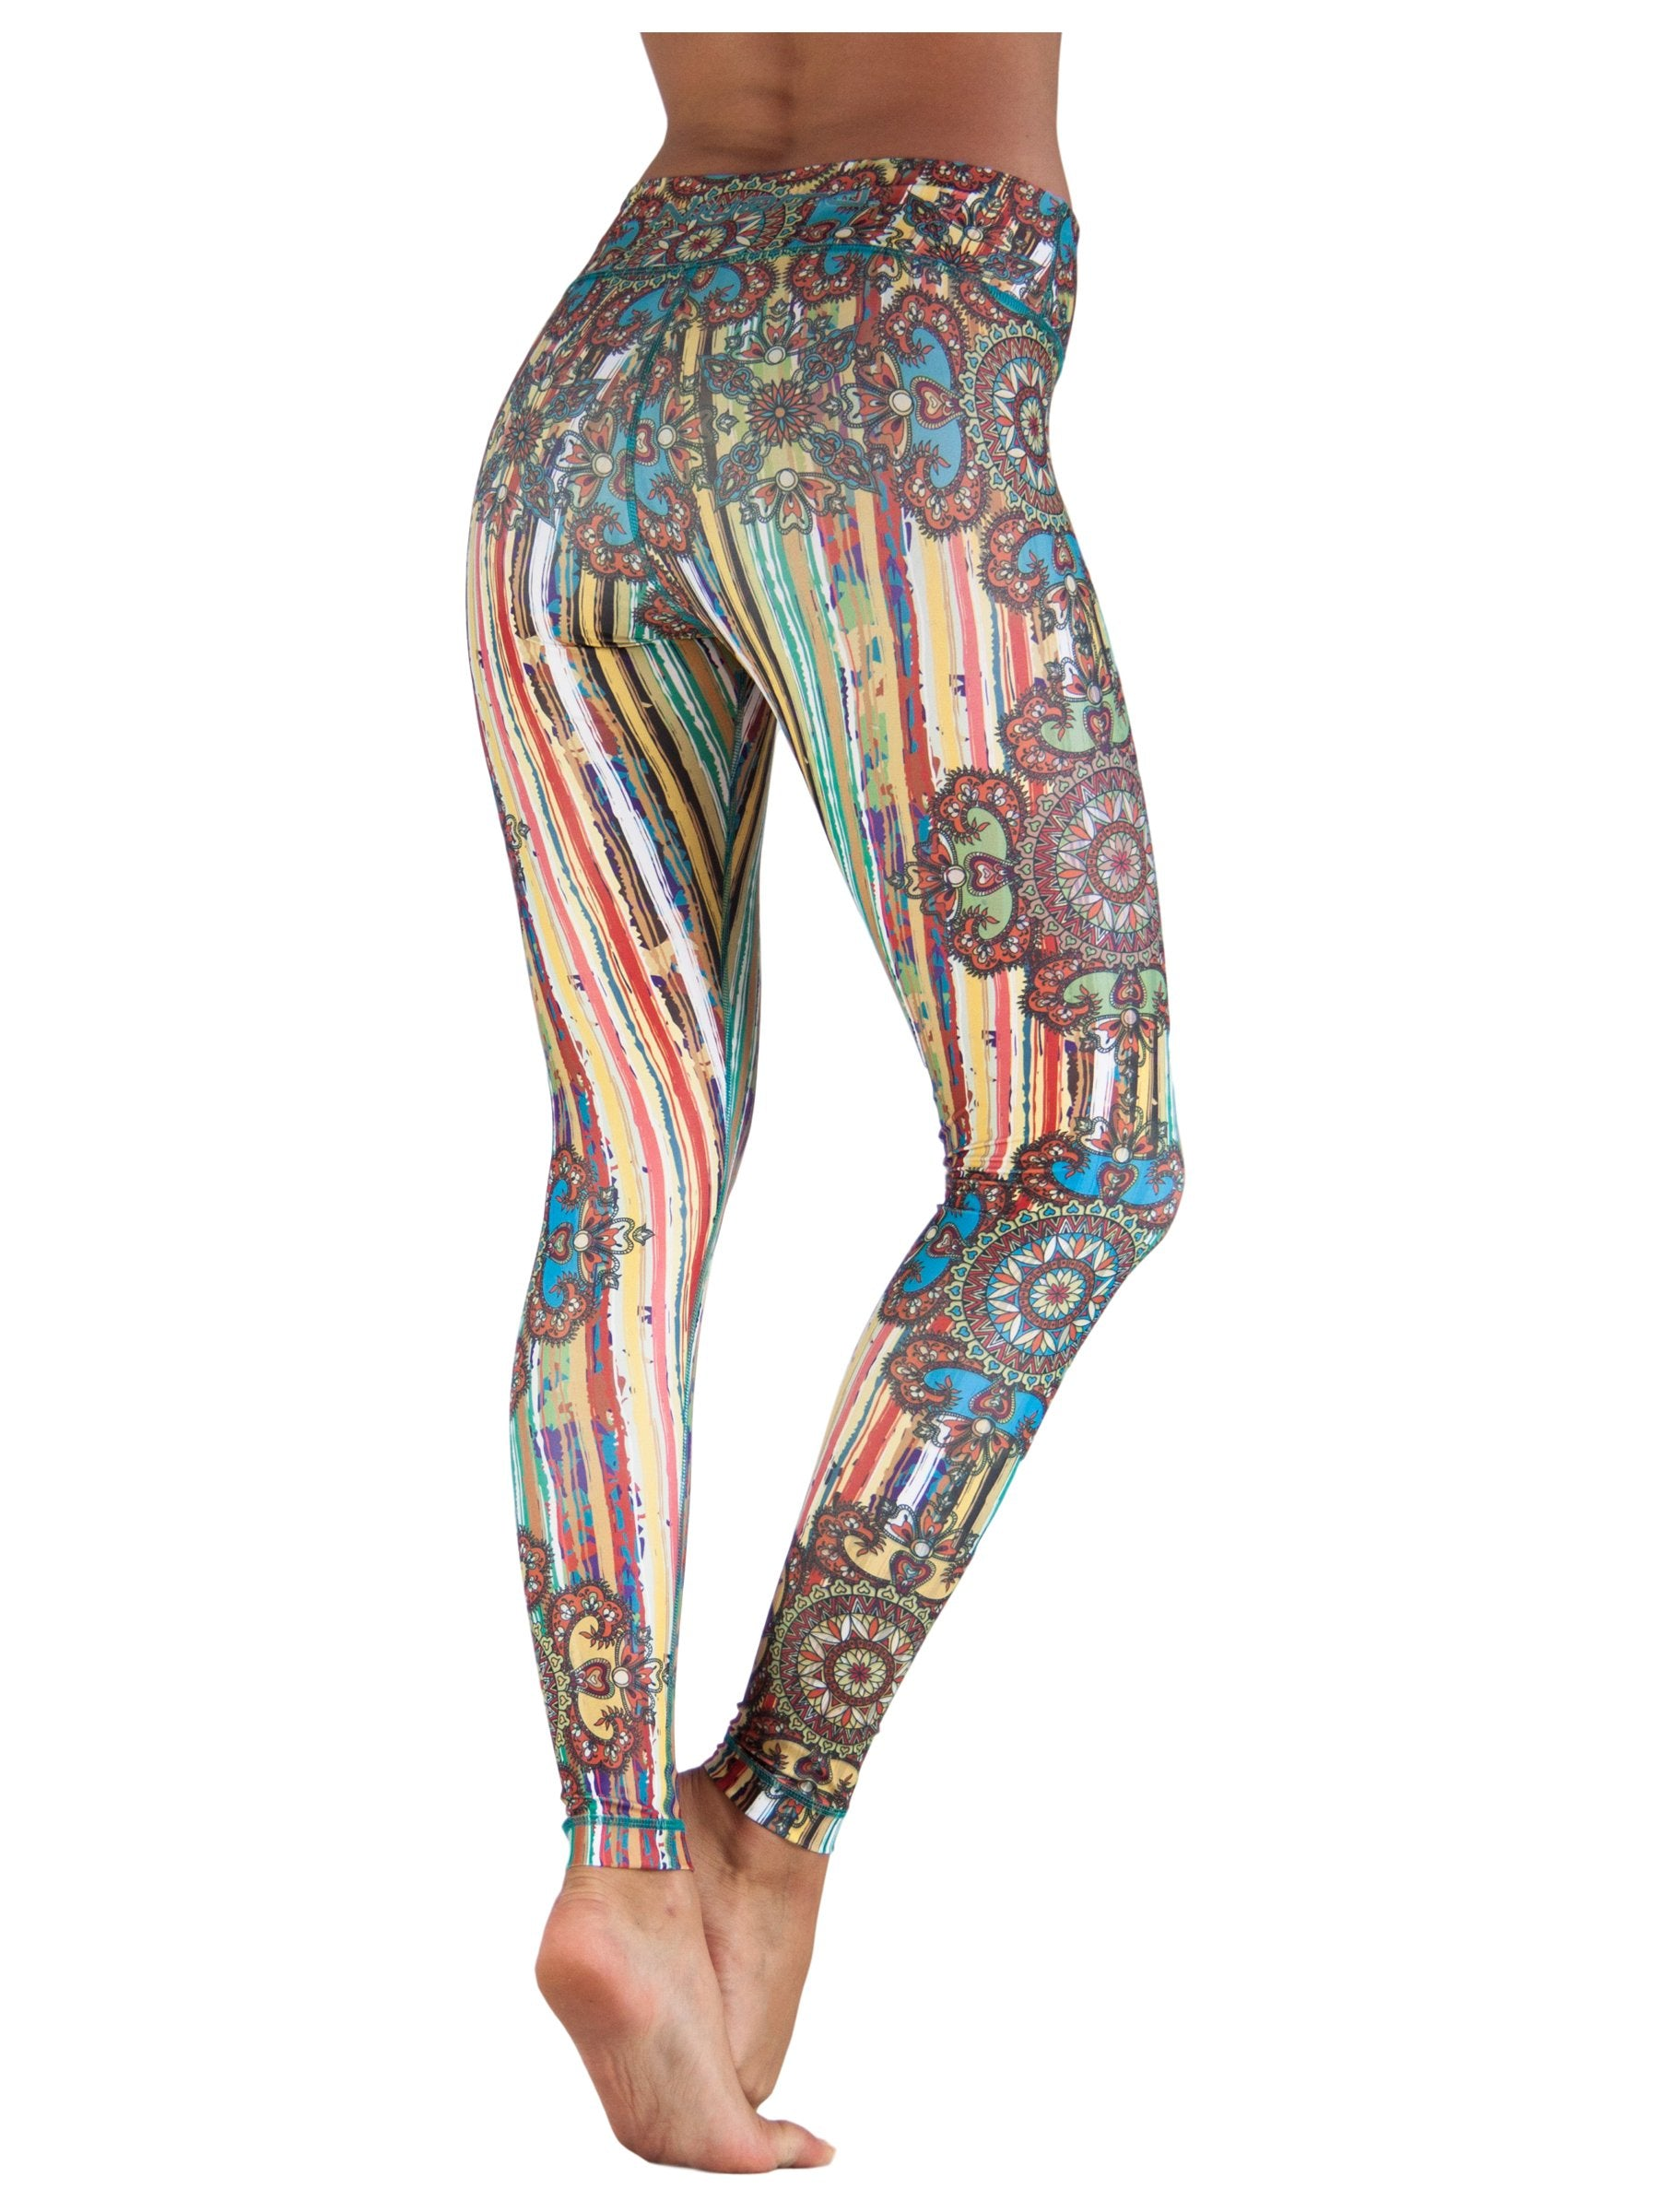 Circus by Niyama - High Quality, Yoga Legging for Movement Artists.